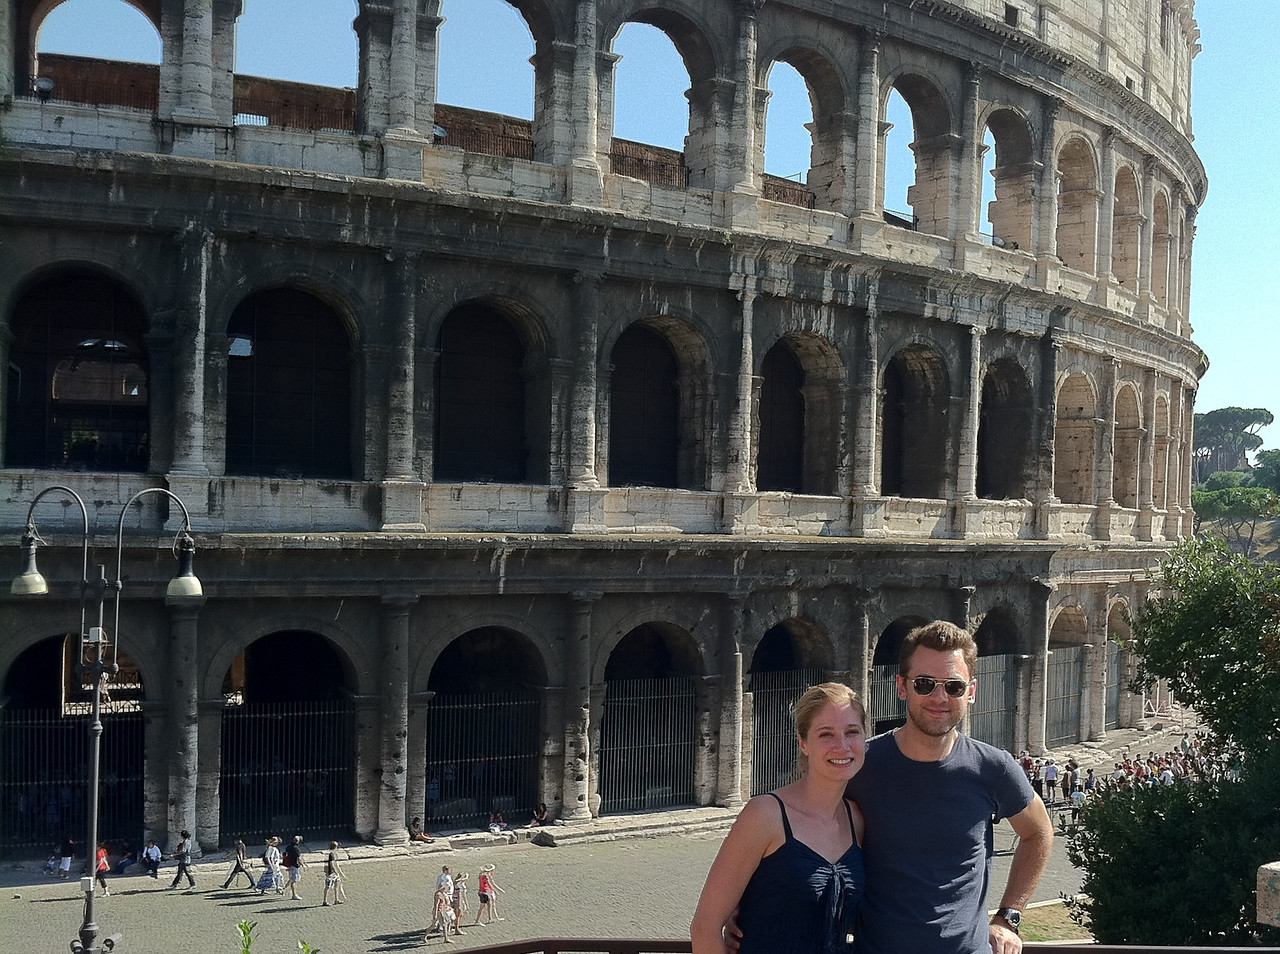 At the Colosseum.